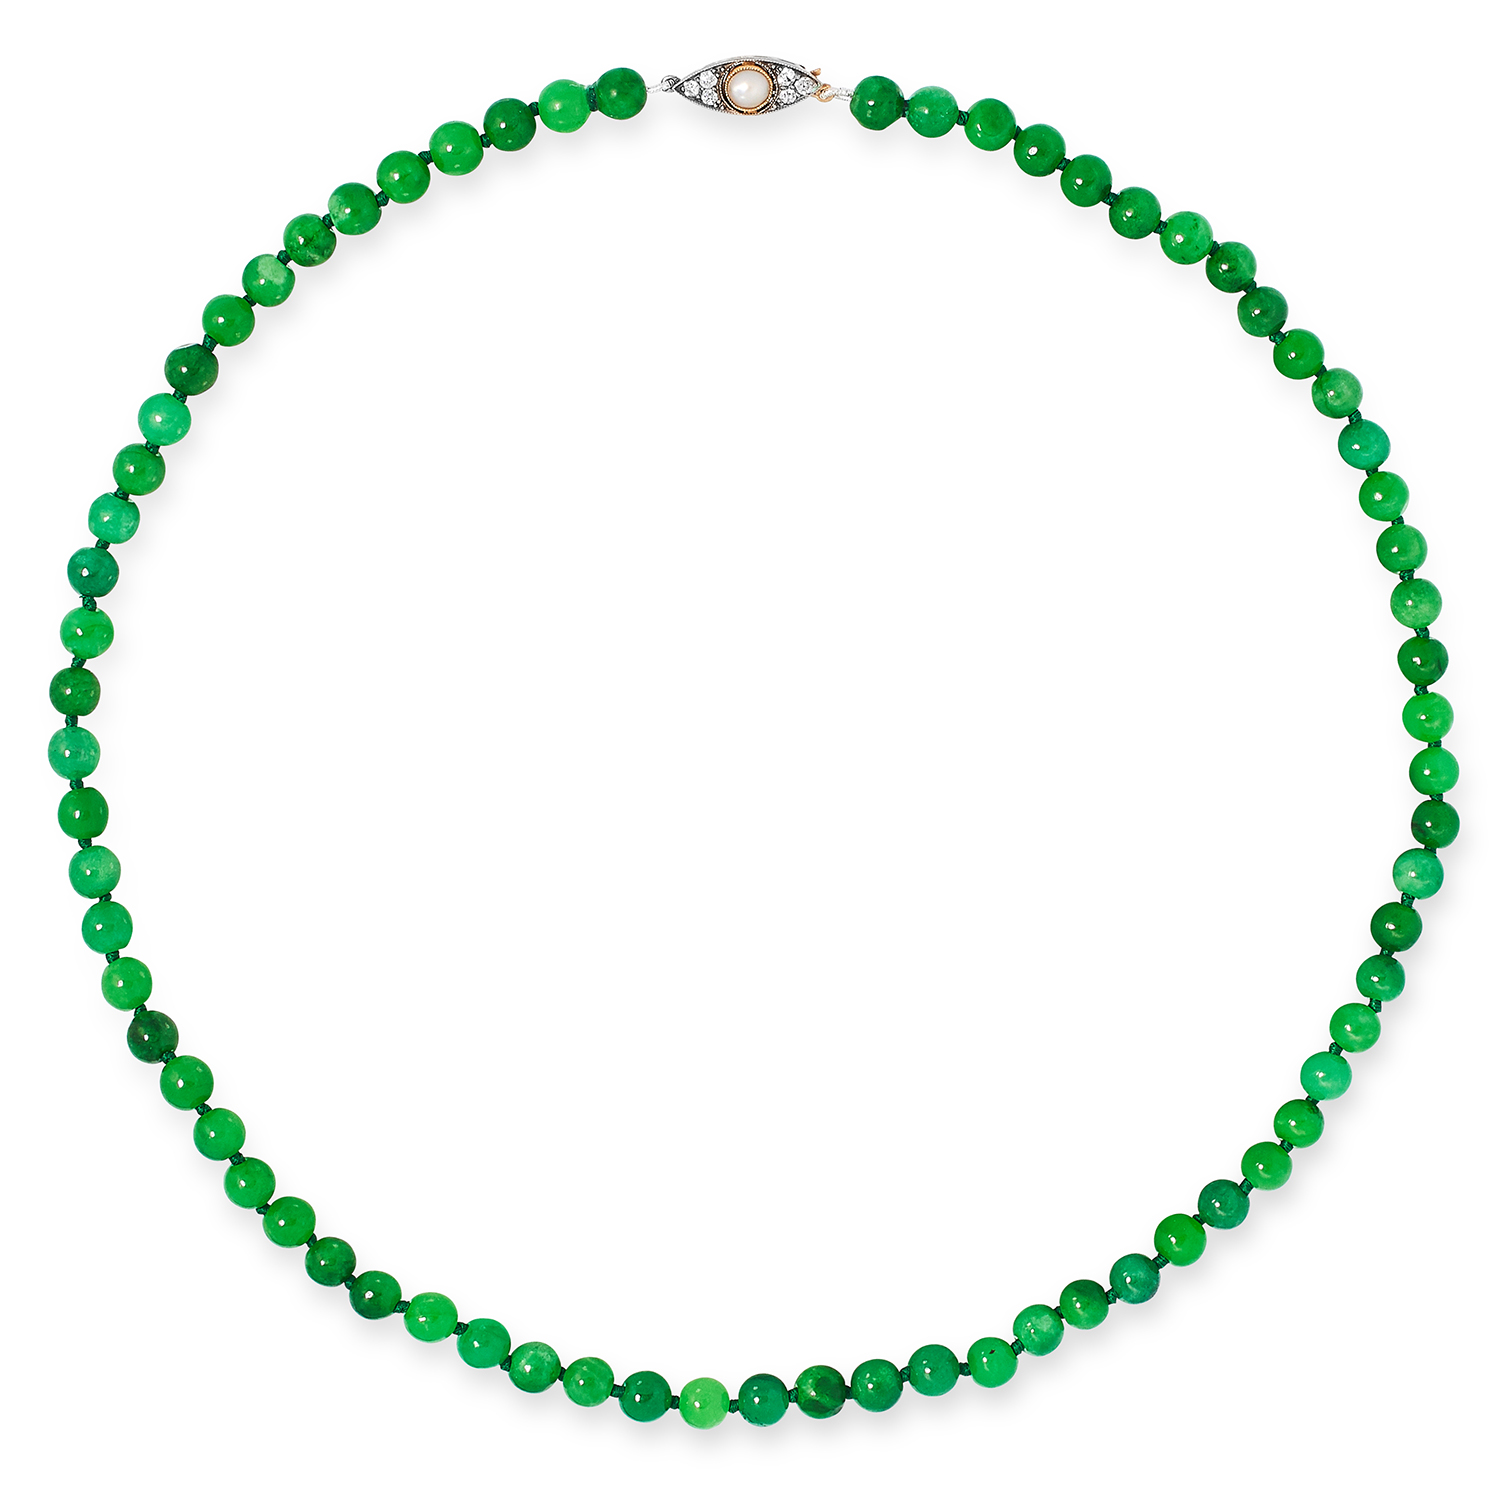 JADE BEAD NECKLACE comprising of a single row of jade beads, with round cut diamond and pearl clasp,